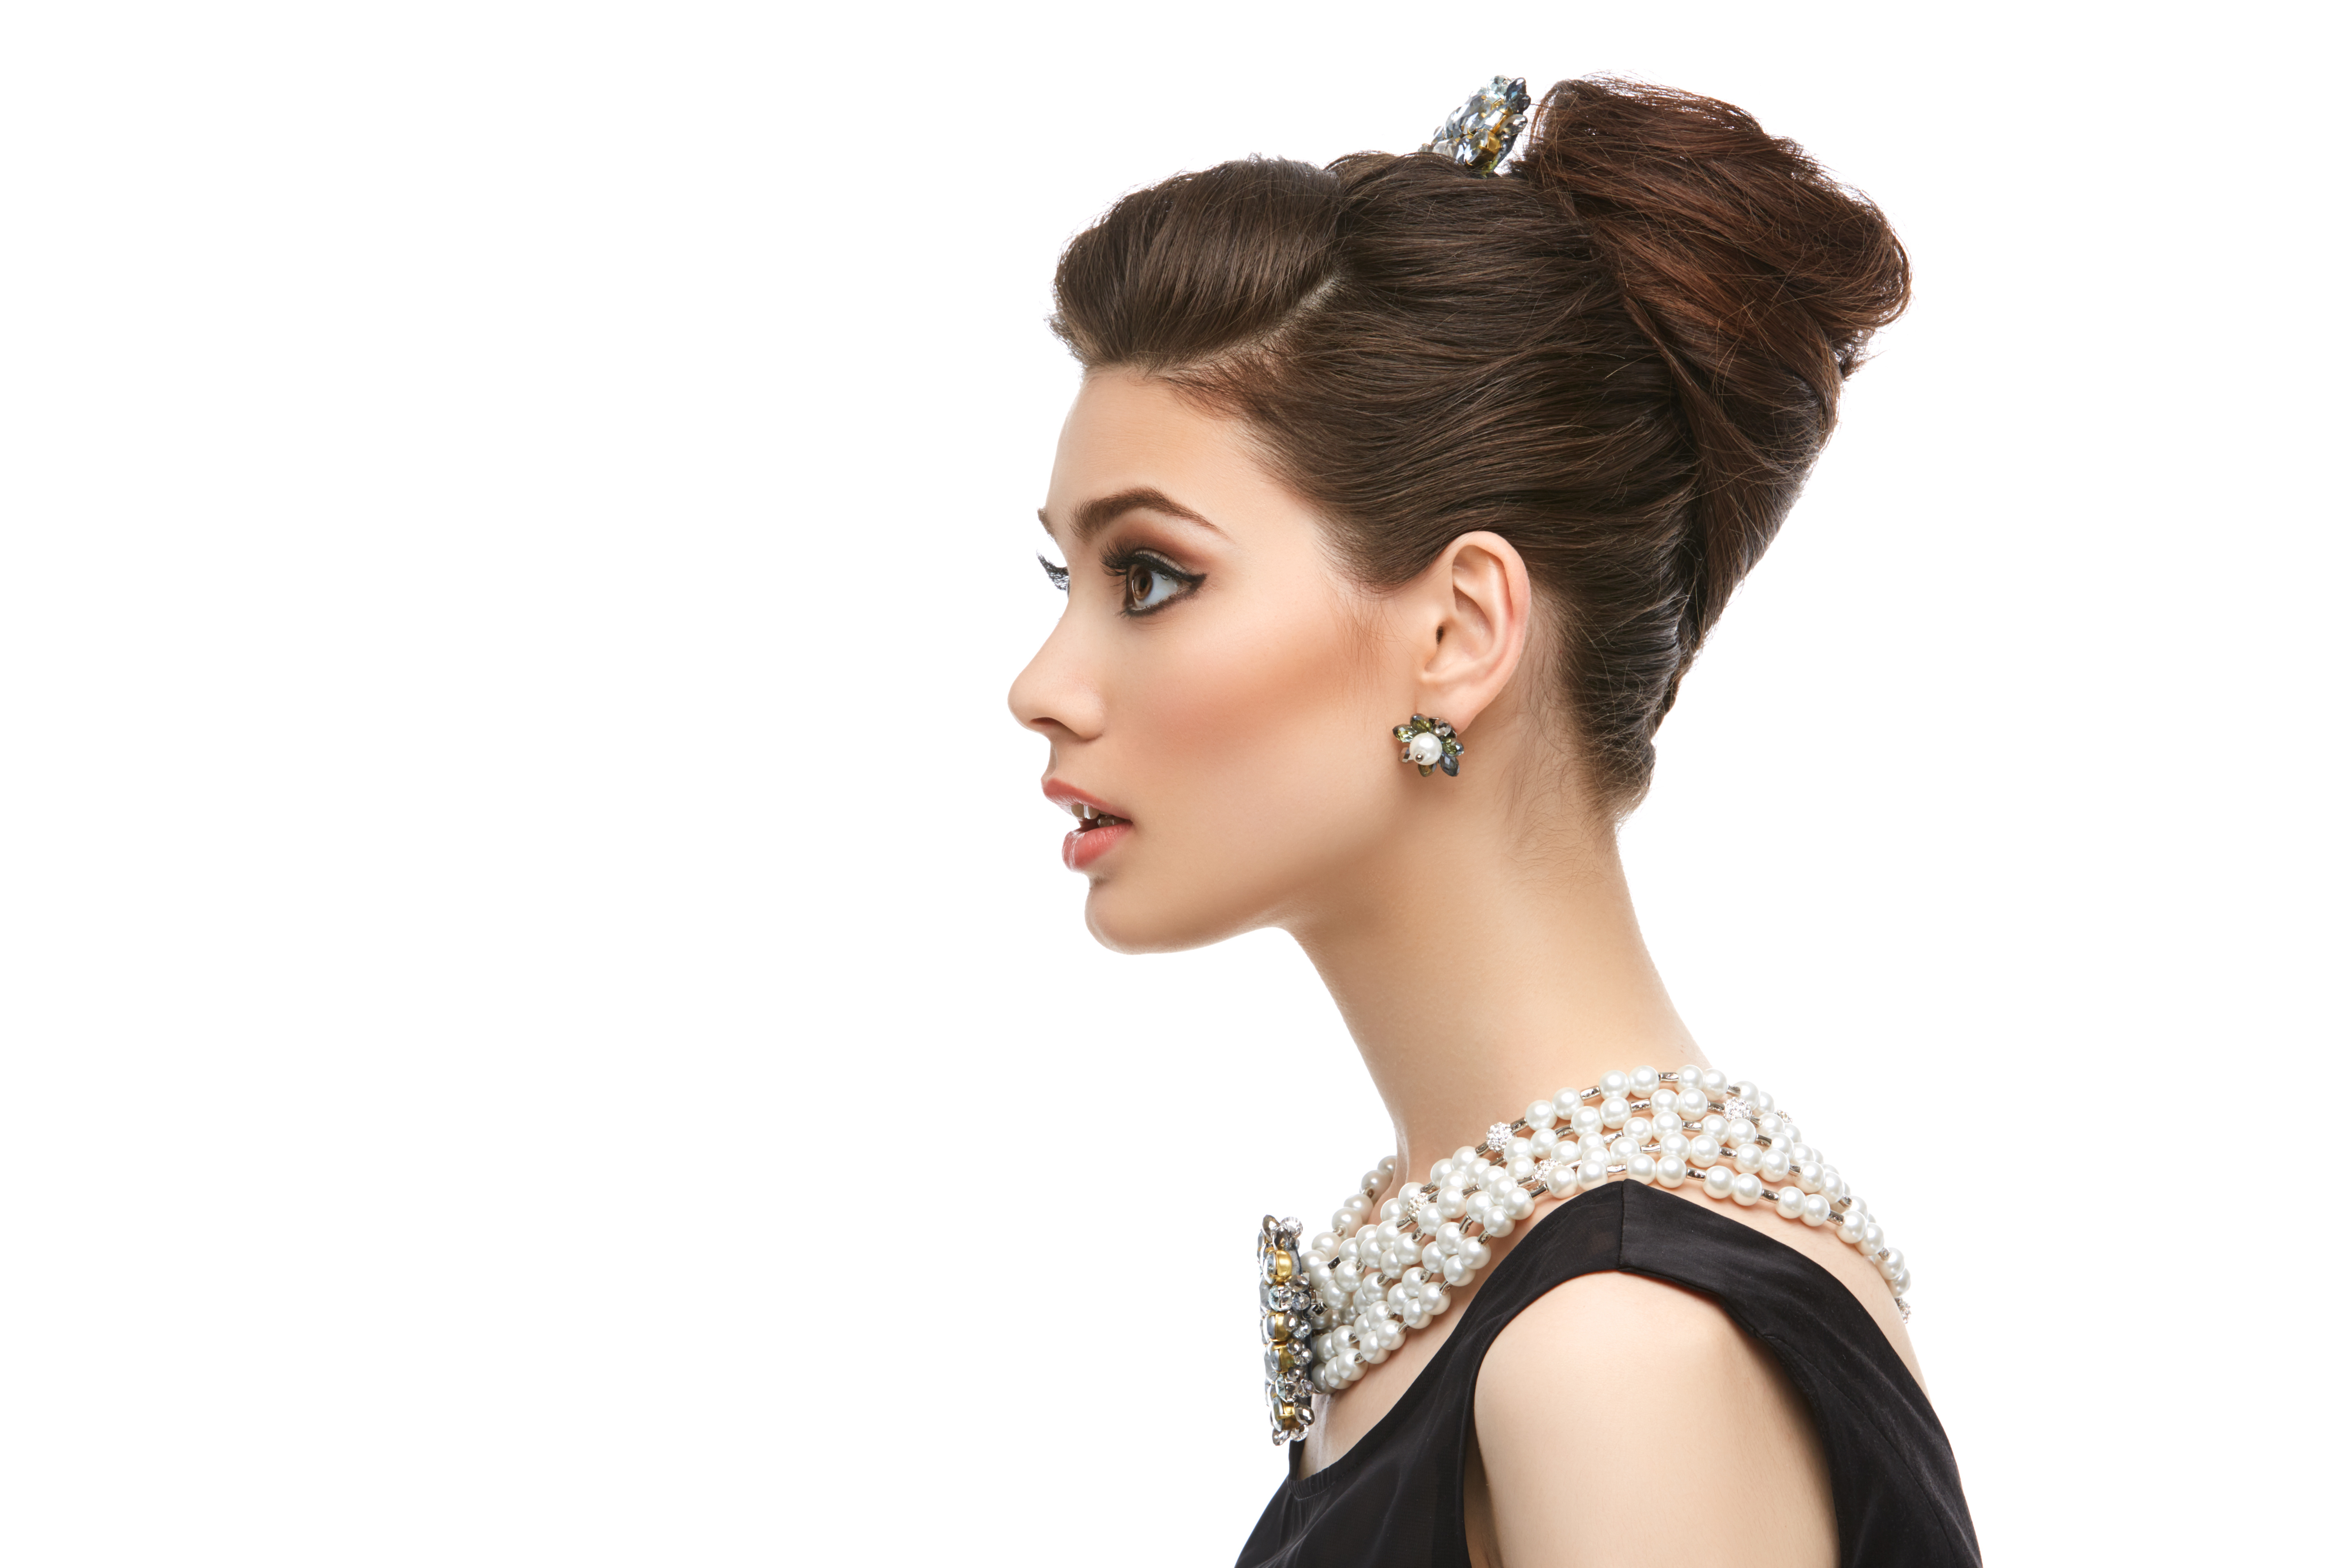 side profile of a woman with an updo hairstyle.jpeg